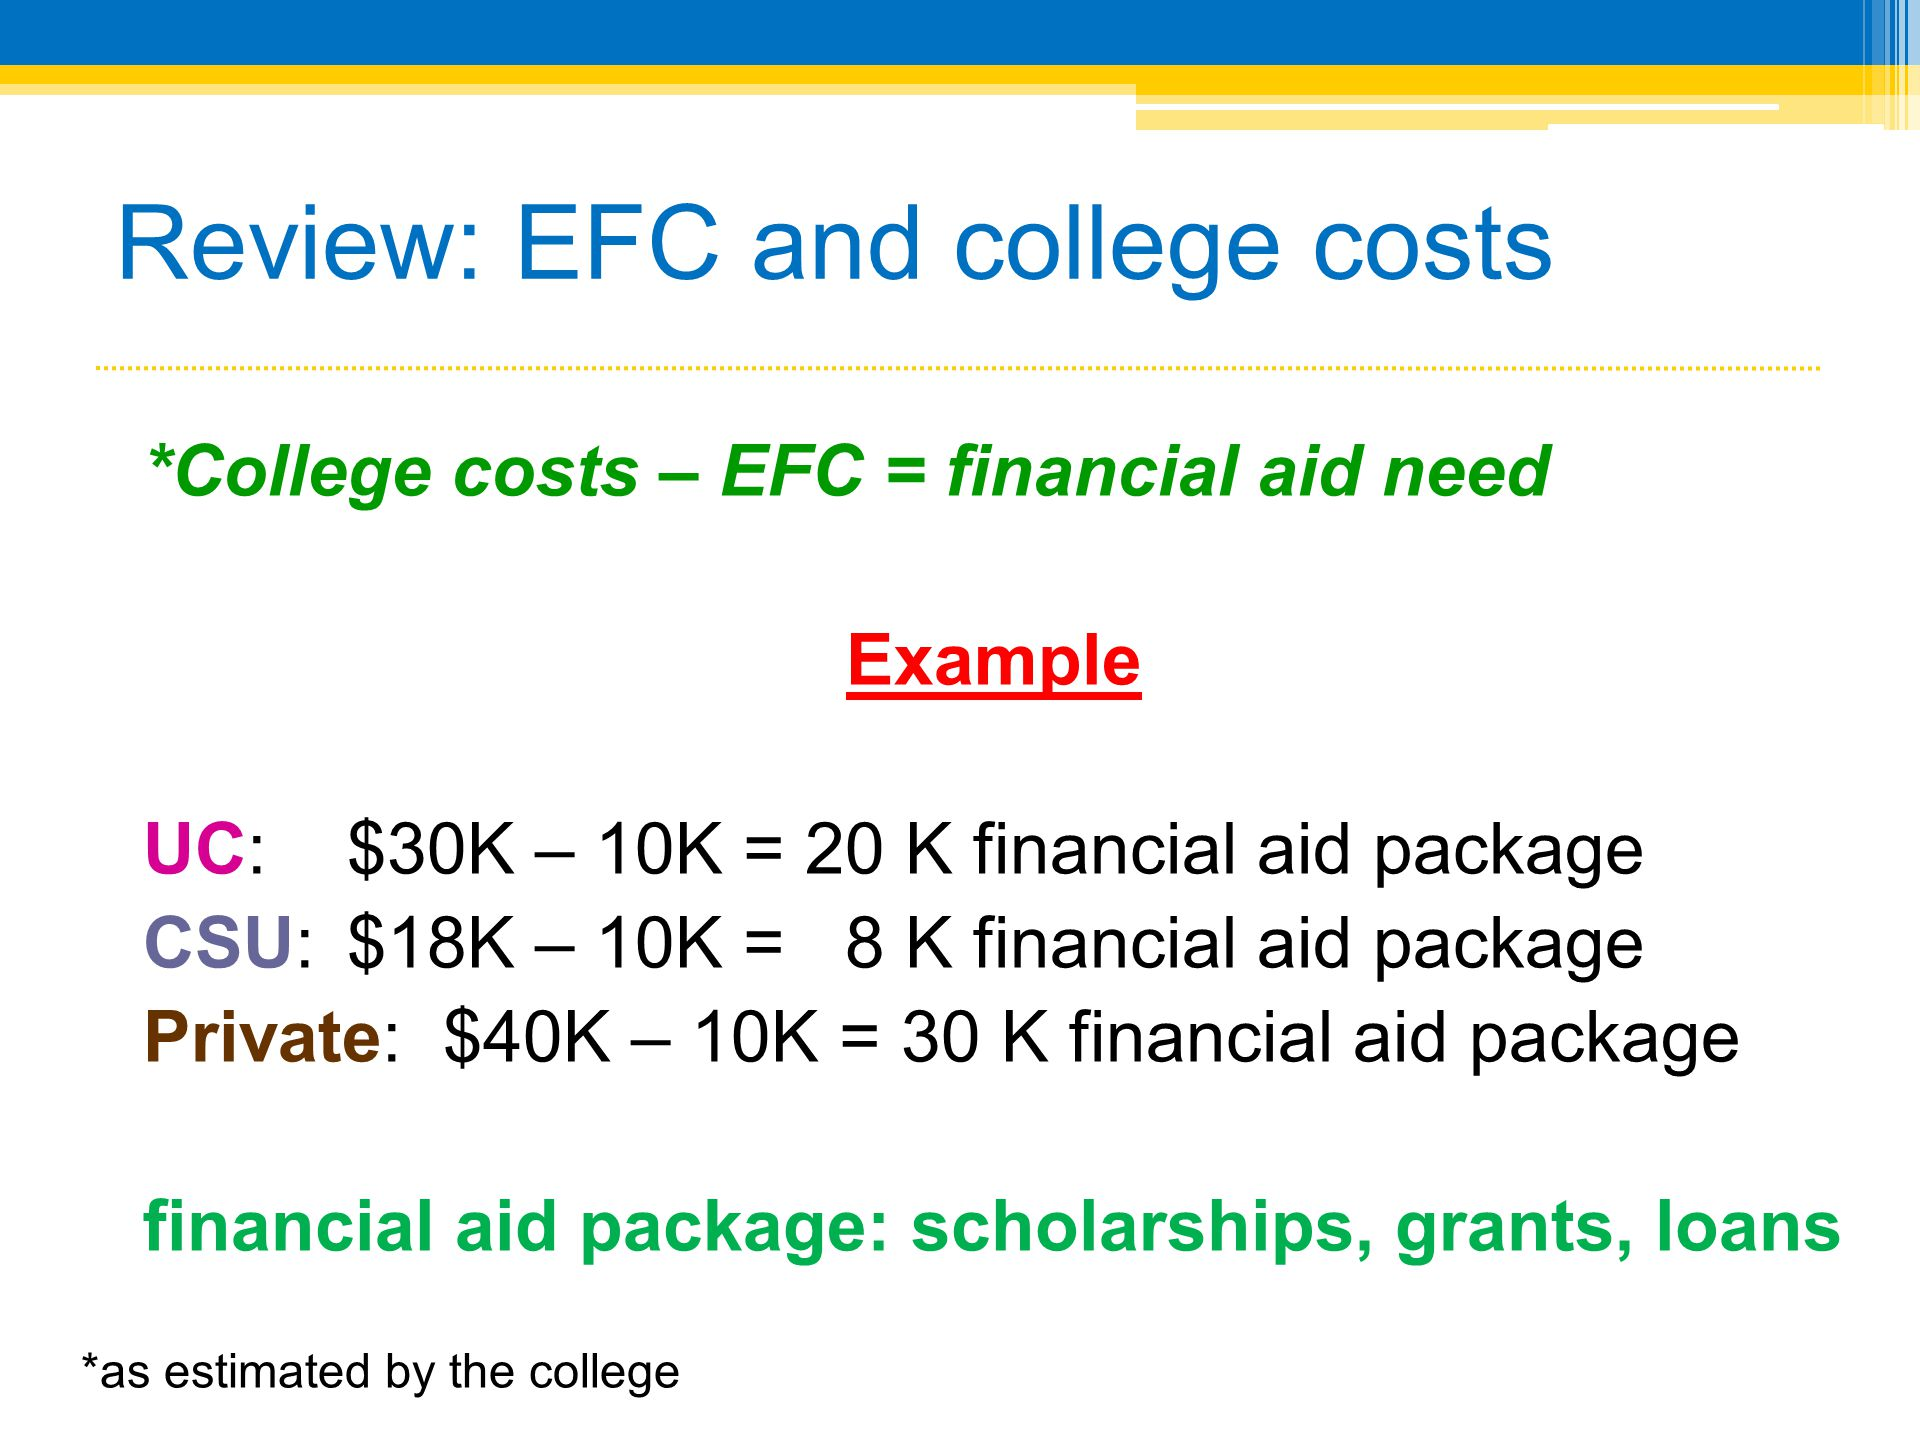 Review: EFC and college costs *College costs – EFC = financial aid need Example UC: $30K – 10K = 20 K financial aid package CSU: $18K – 10K = 8 K financial aid package Private: $40K – 10K = 30 K financial aid package financial aid package: scholarships, grants, loans *as estimated by the college